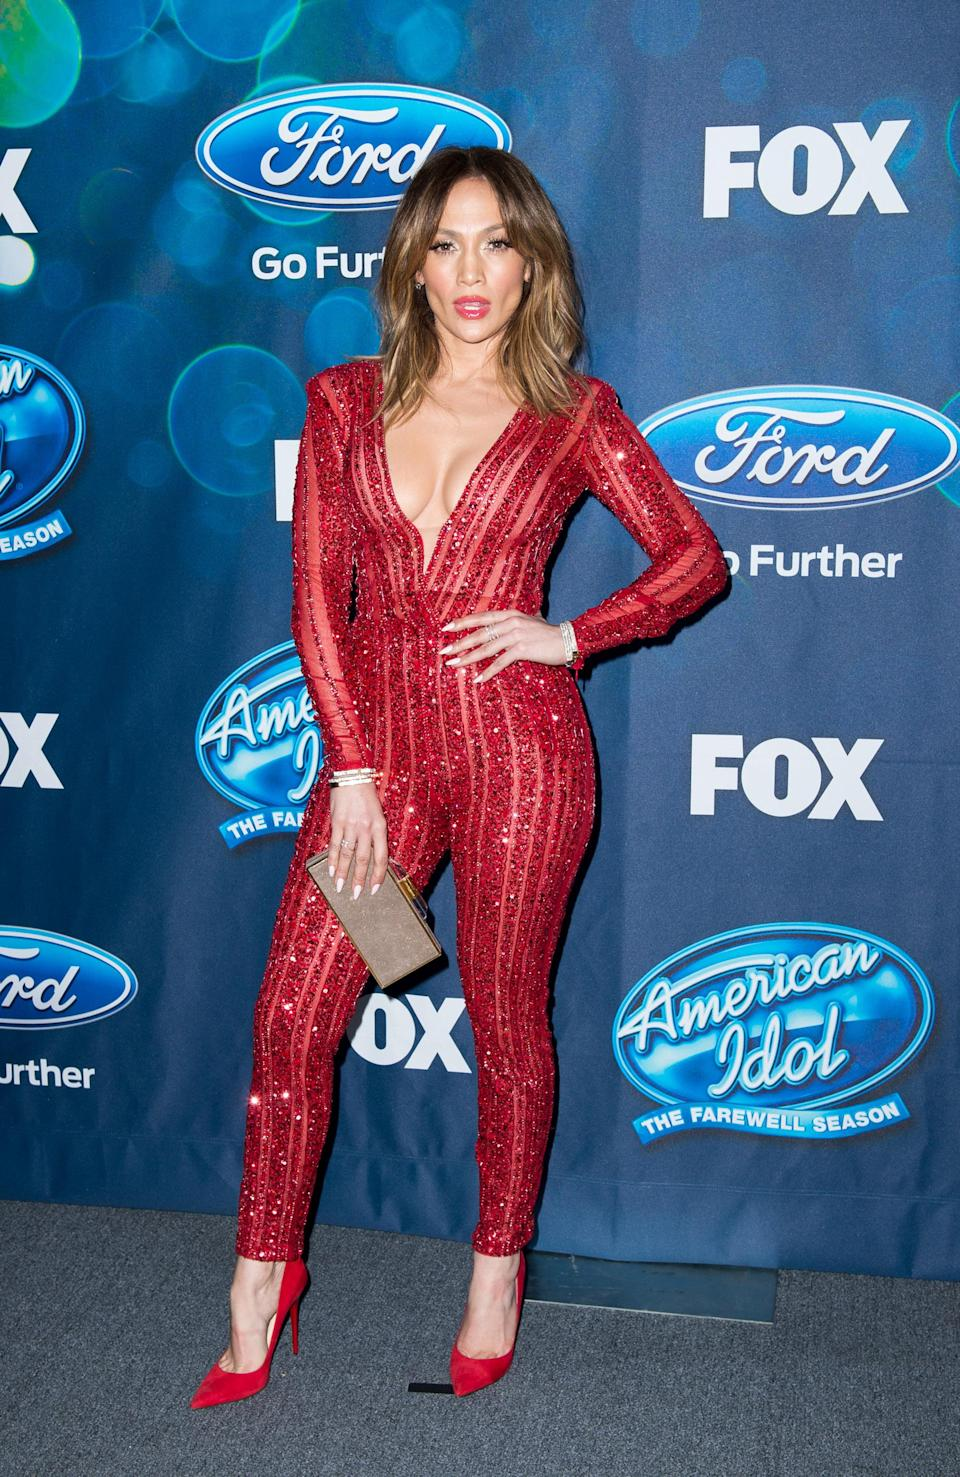 <p>2016 was the year J.Lo joined American Idol as a judge – it was also the year she donned this red sequins, pant suit look – and we are not worthy. [Photo: Getty] </p>